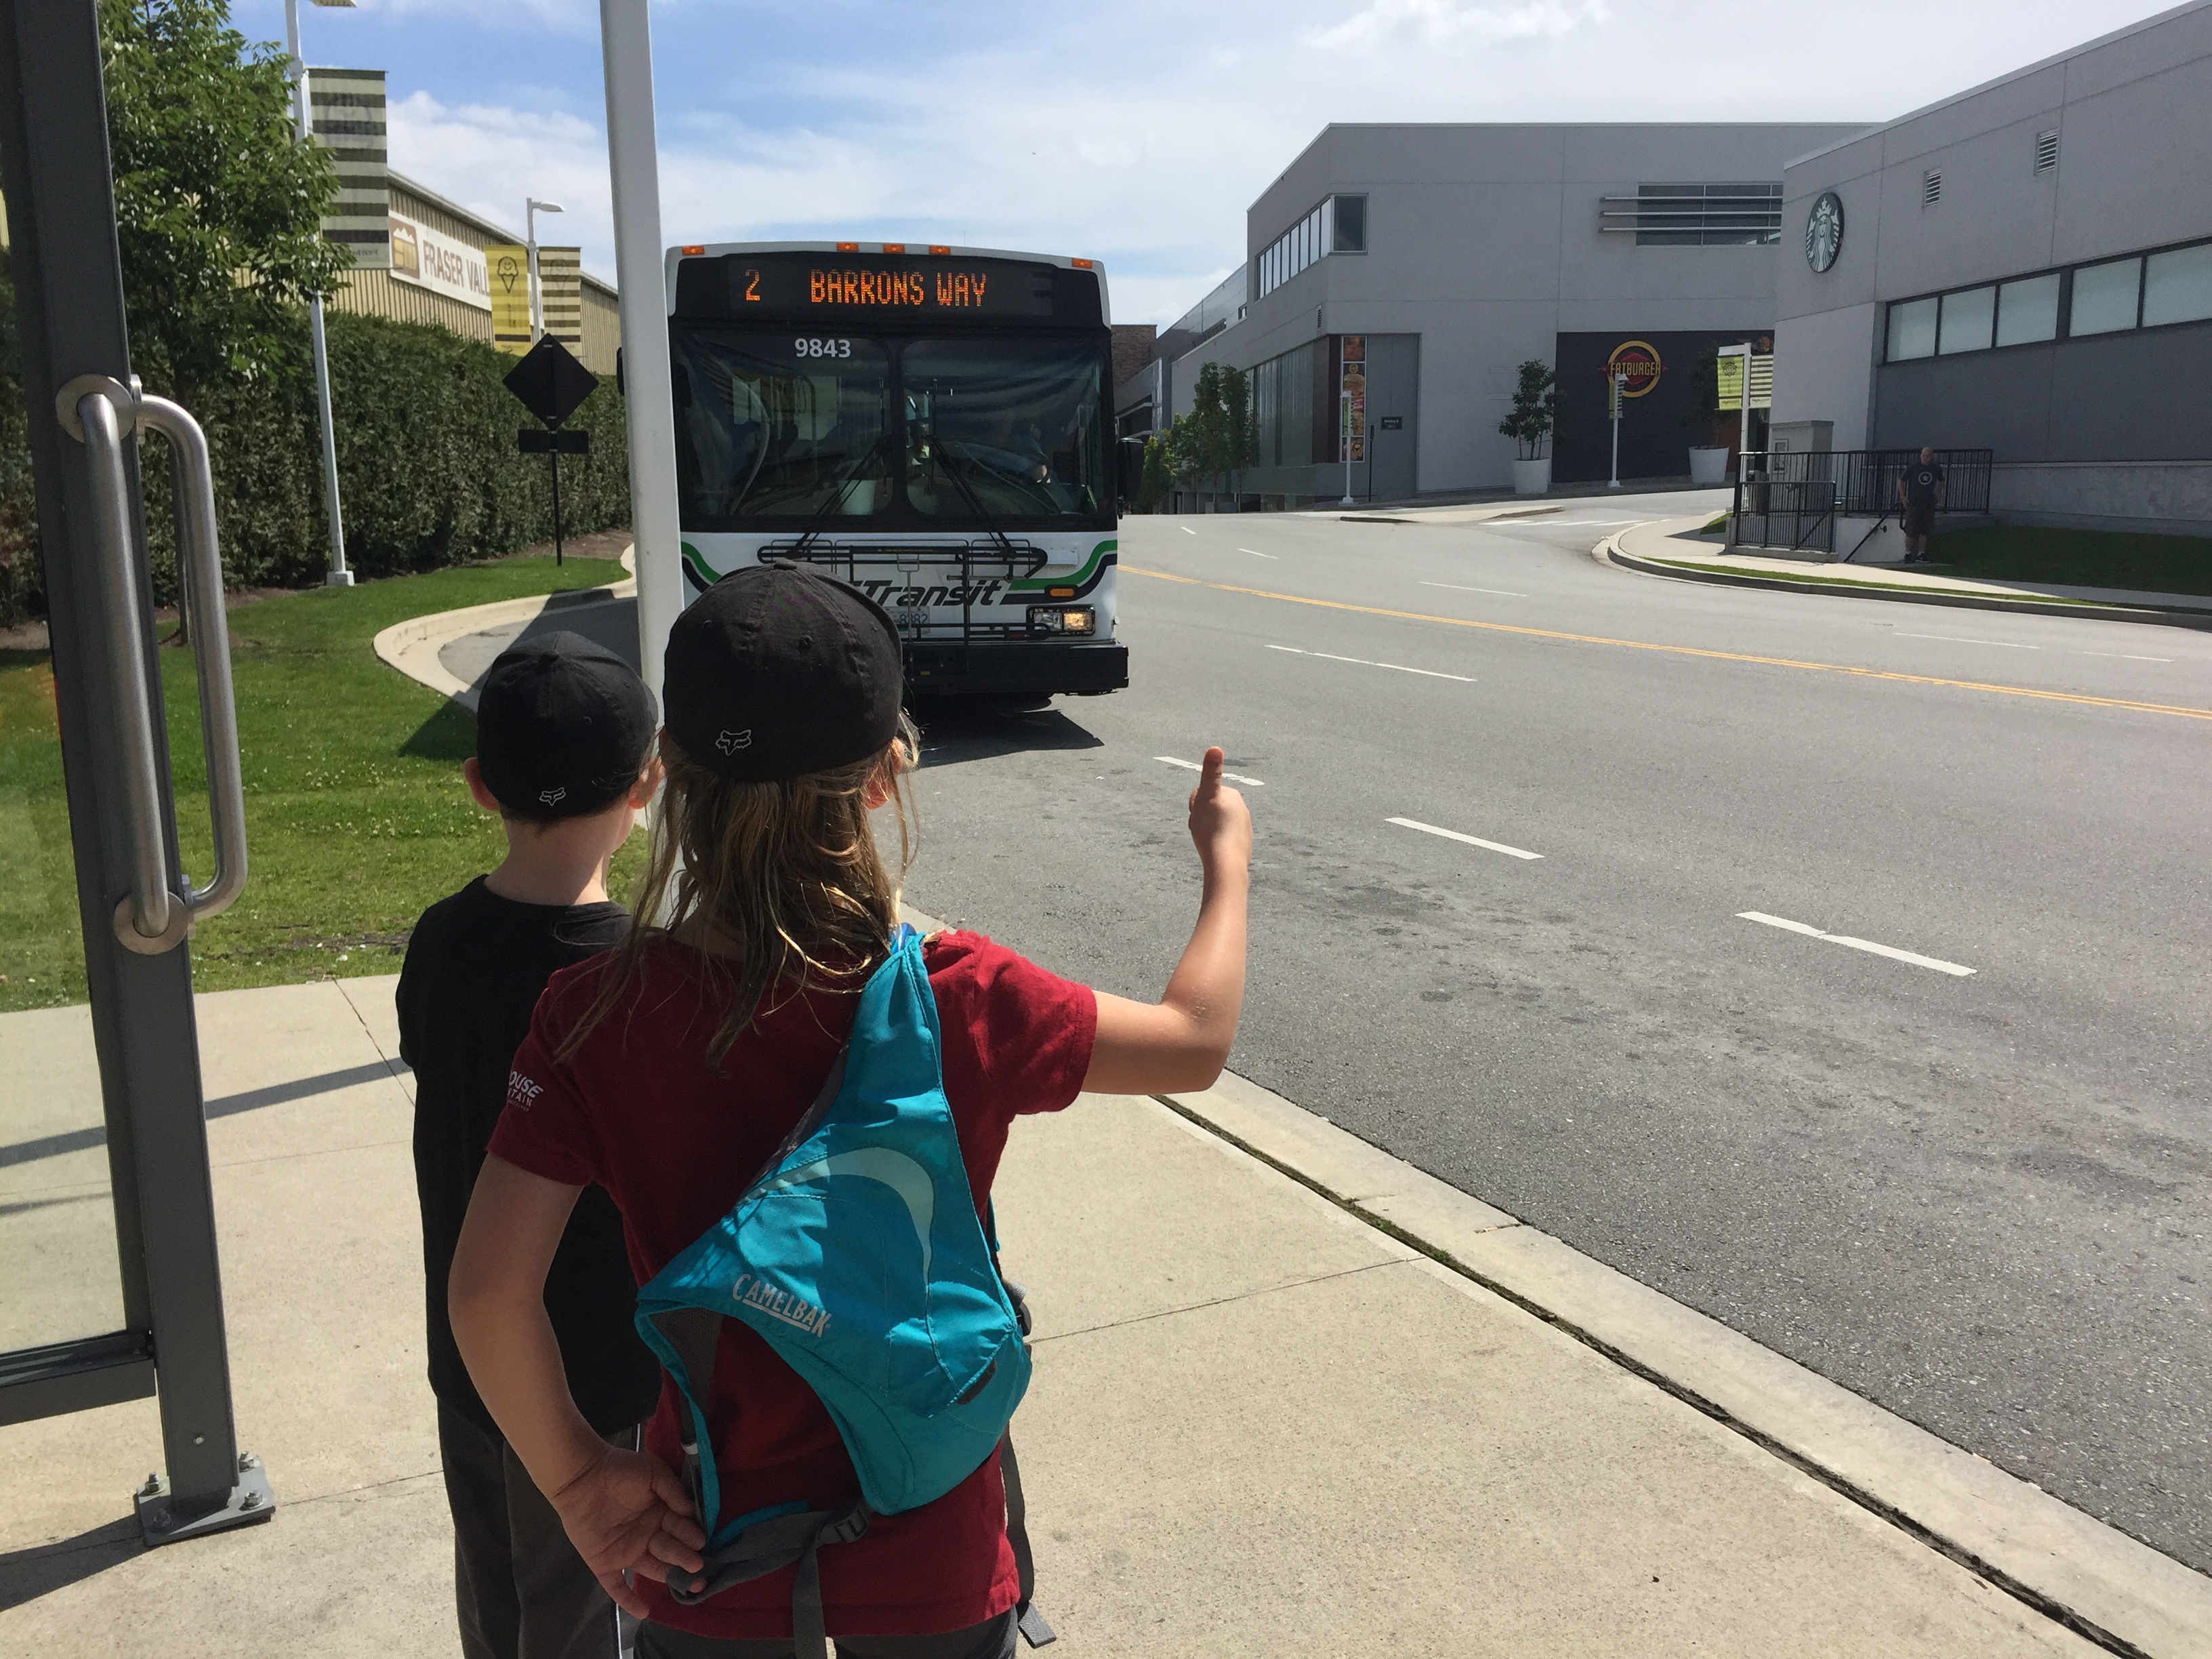 Children waiting at the Bus in Abbotsford for the explore bc by bus campaign